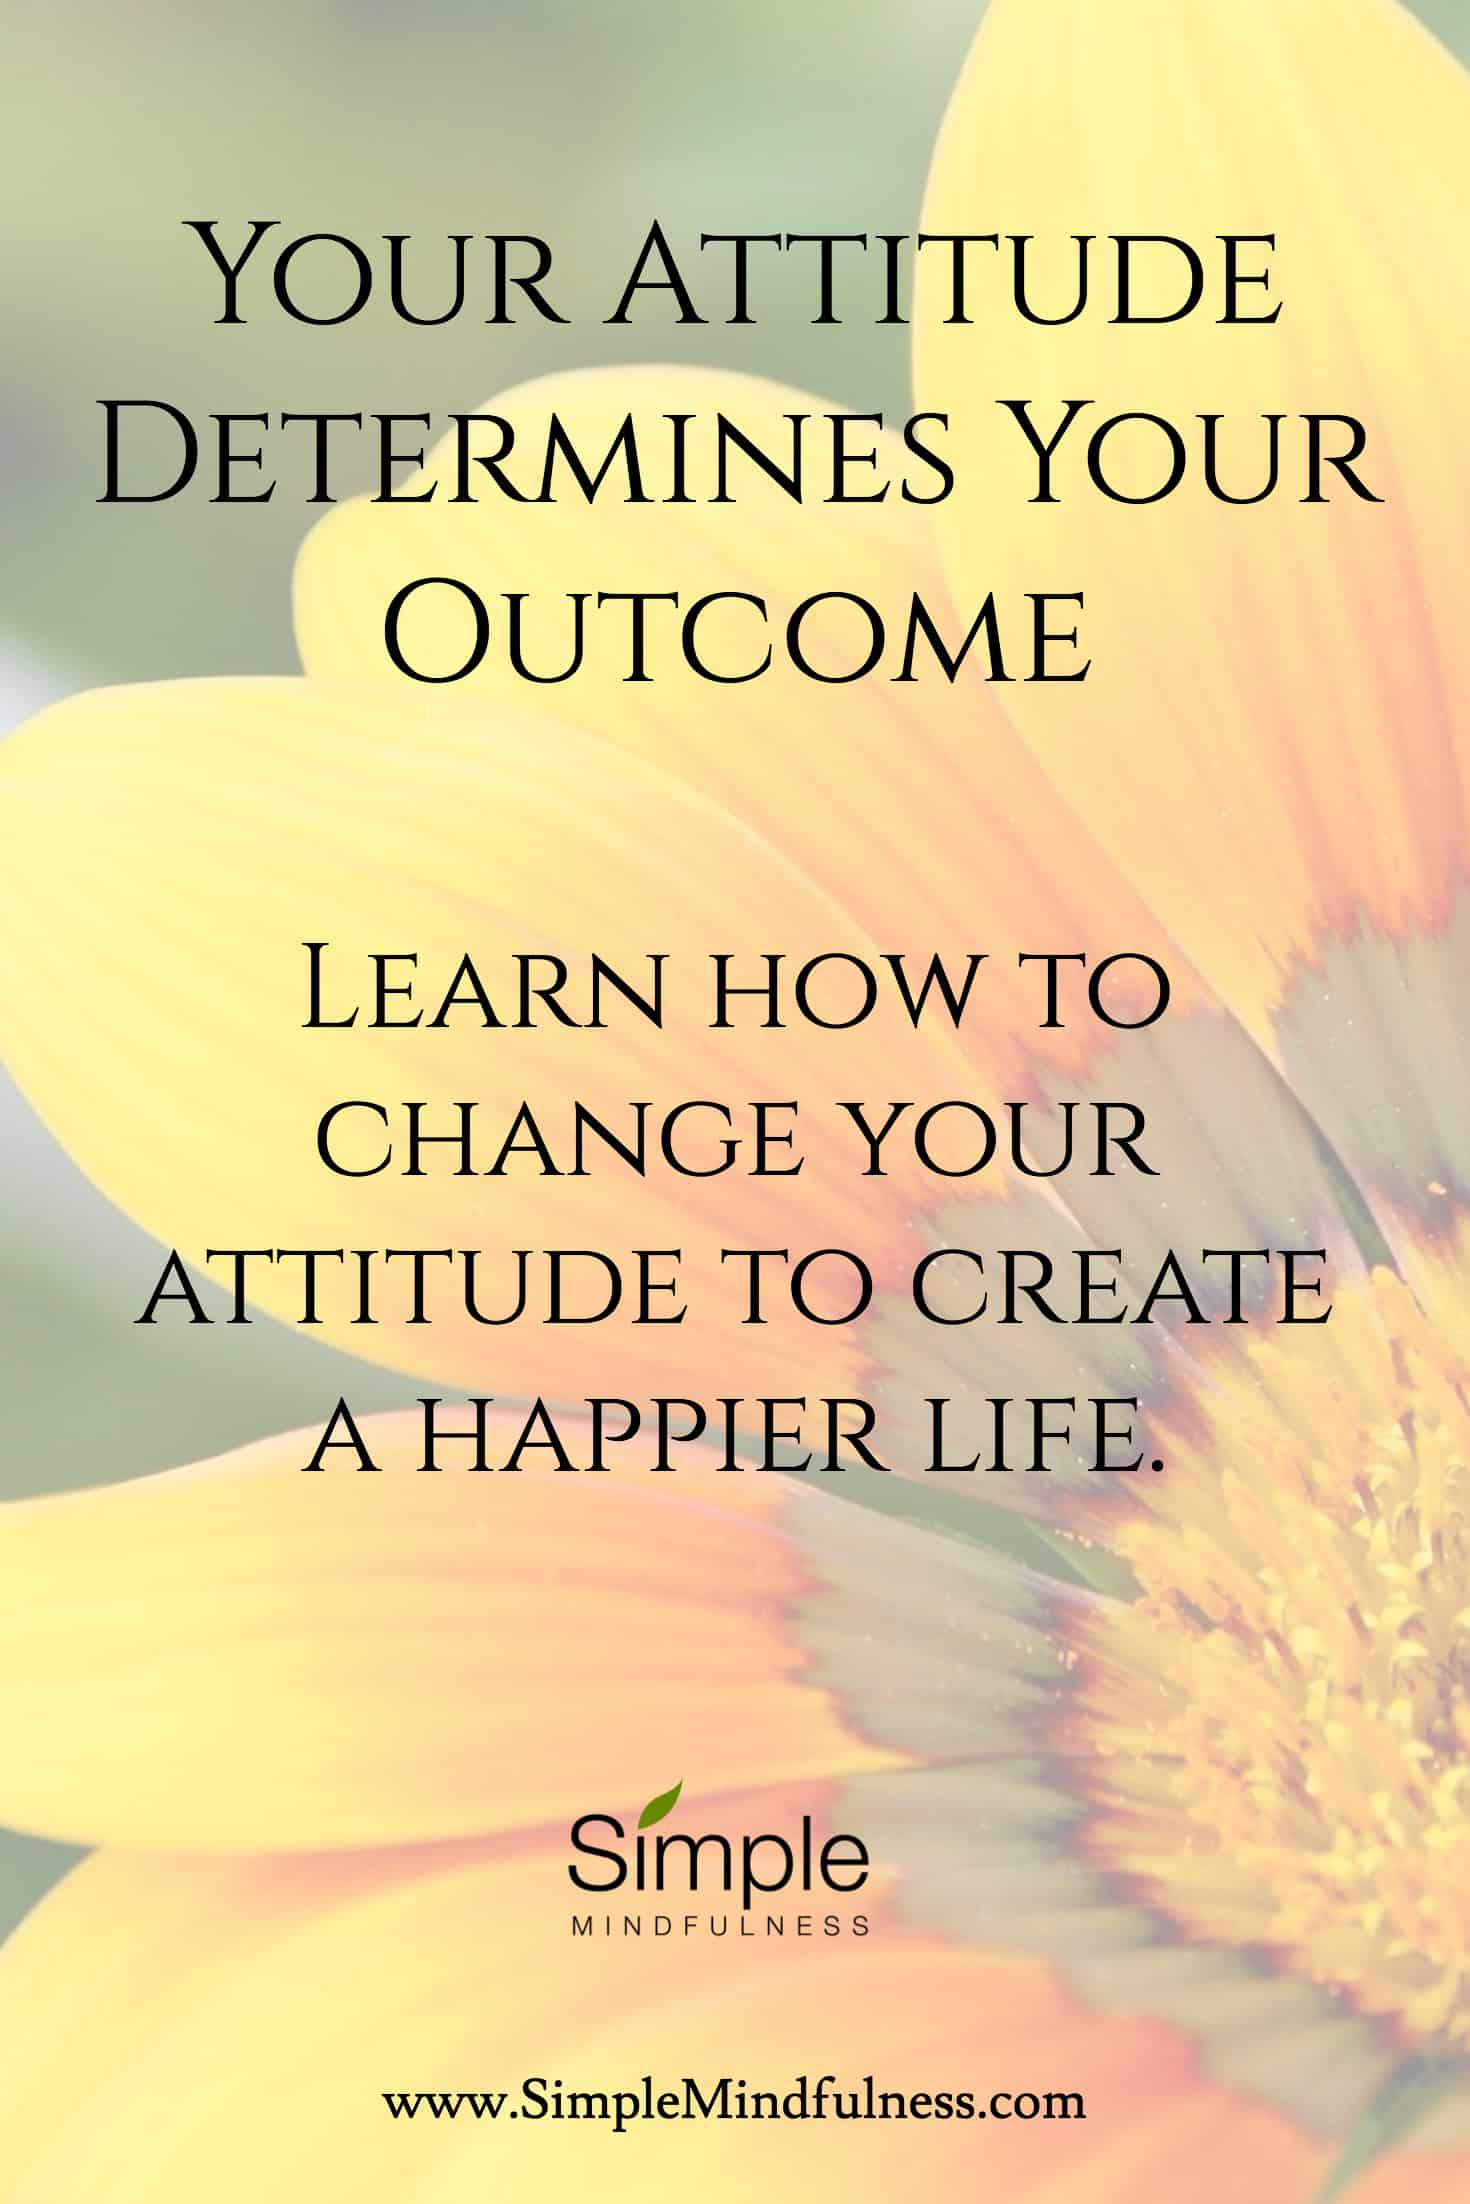 Your Attitude Determines Your Outcome: Find out how to change unwanted outcomes with a new attitude.